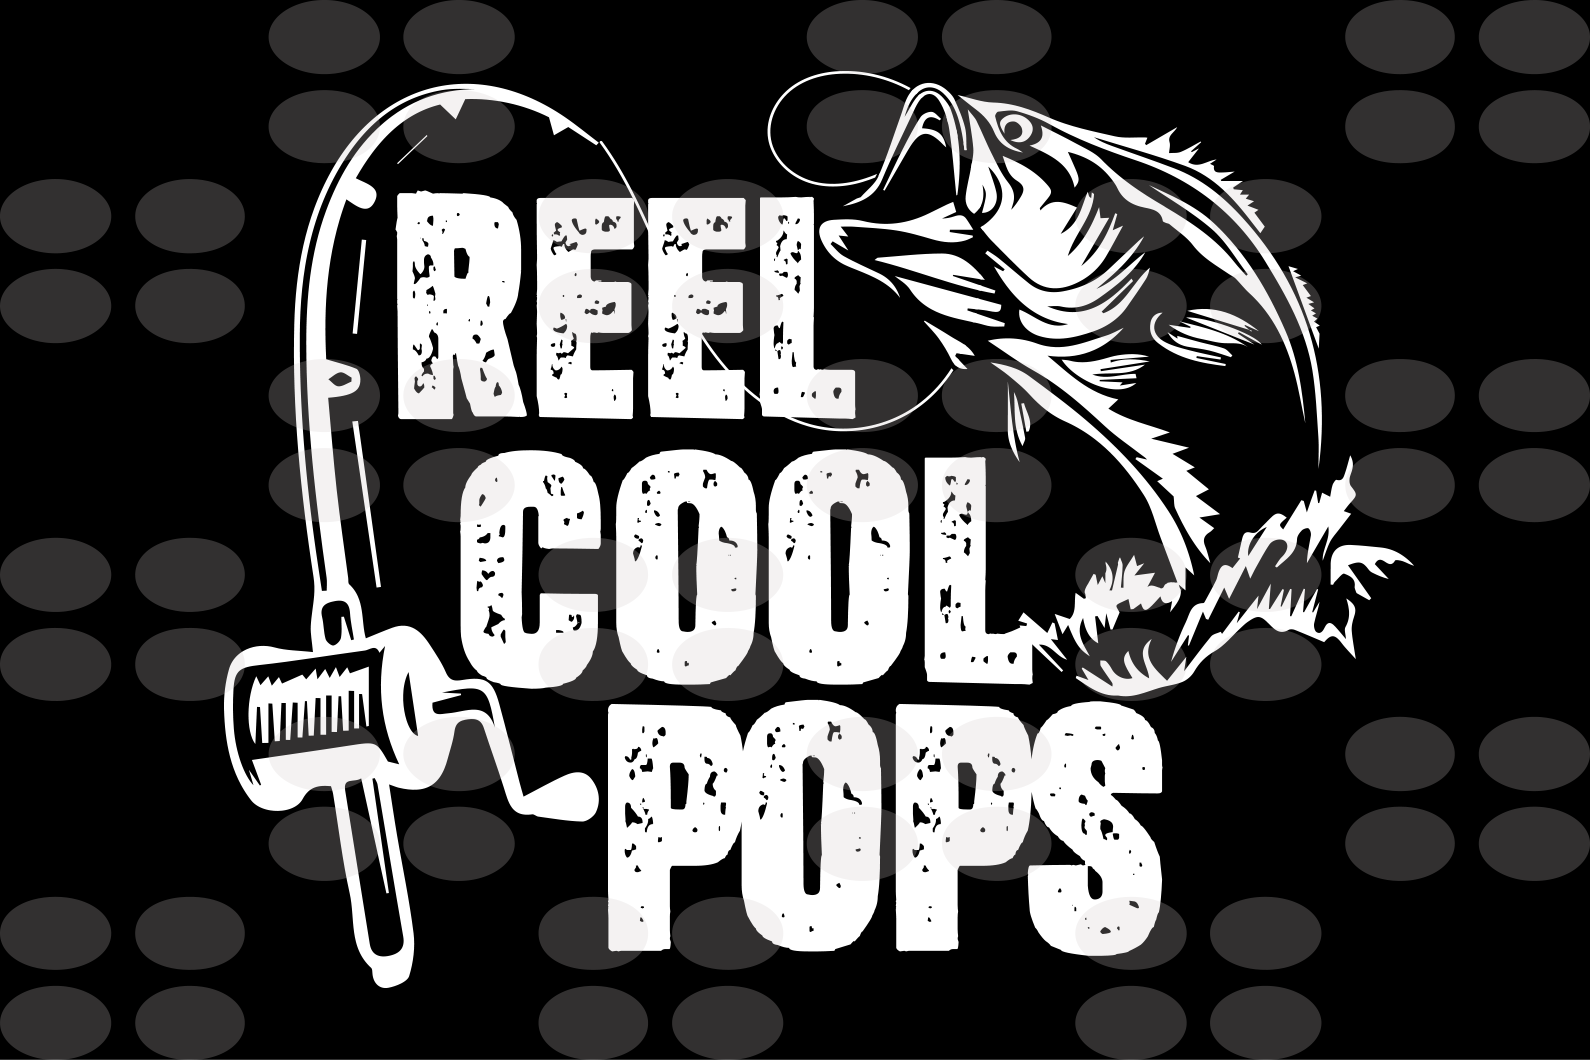 Reel cool pops svg, dad shirt, dad gift, awesome dad, dad birthday, father's day gift, fishing svg, fishing rod print, fish silhouette, fishing lover gift, fishing lover shirt, gift from children, digital file, svg cut files